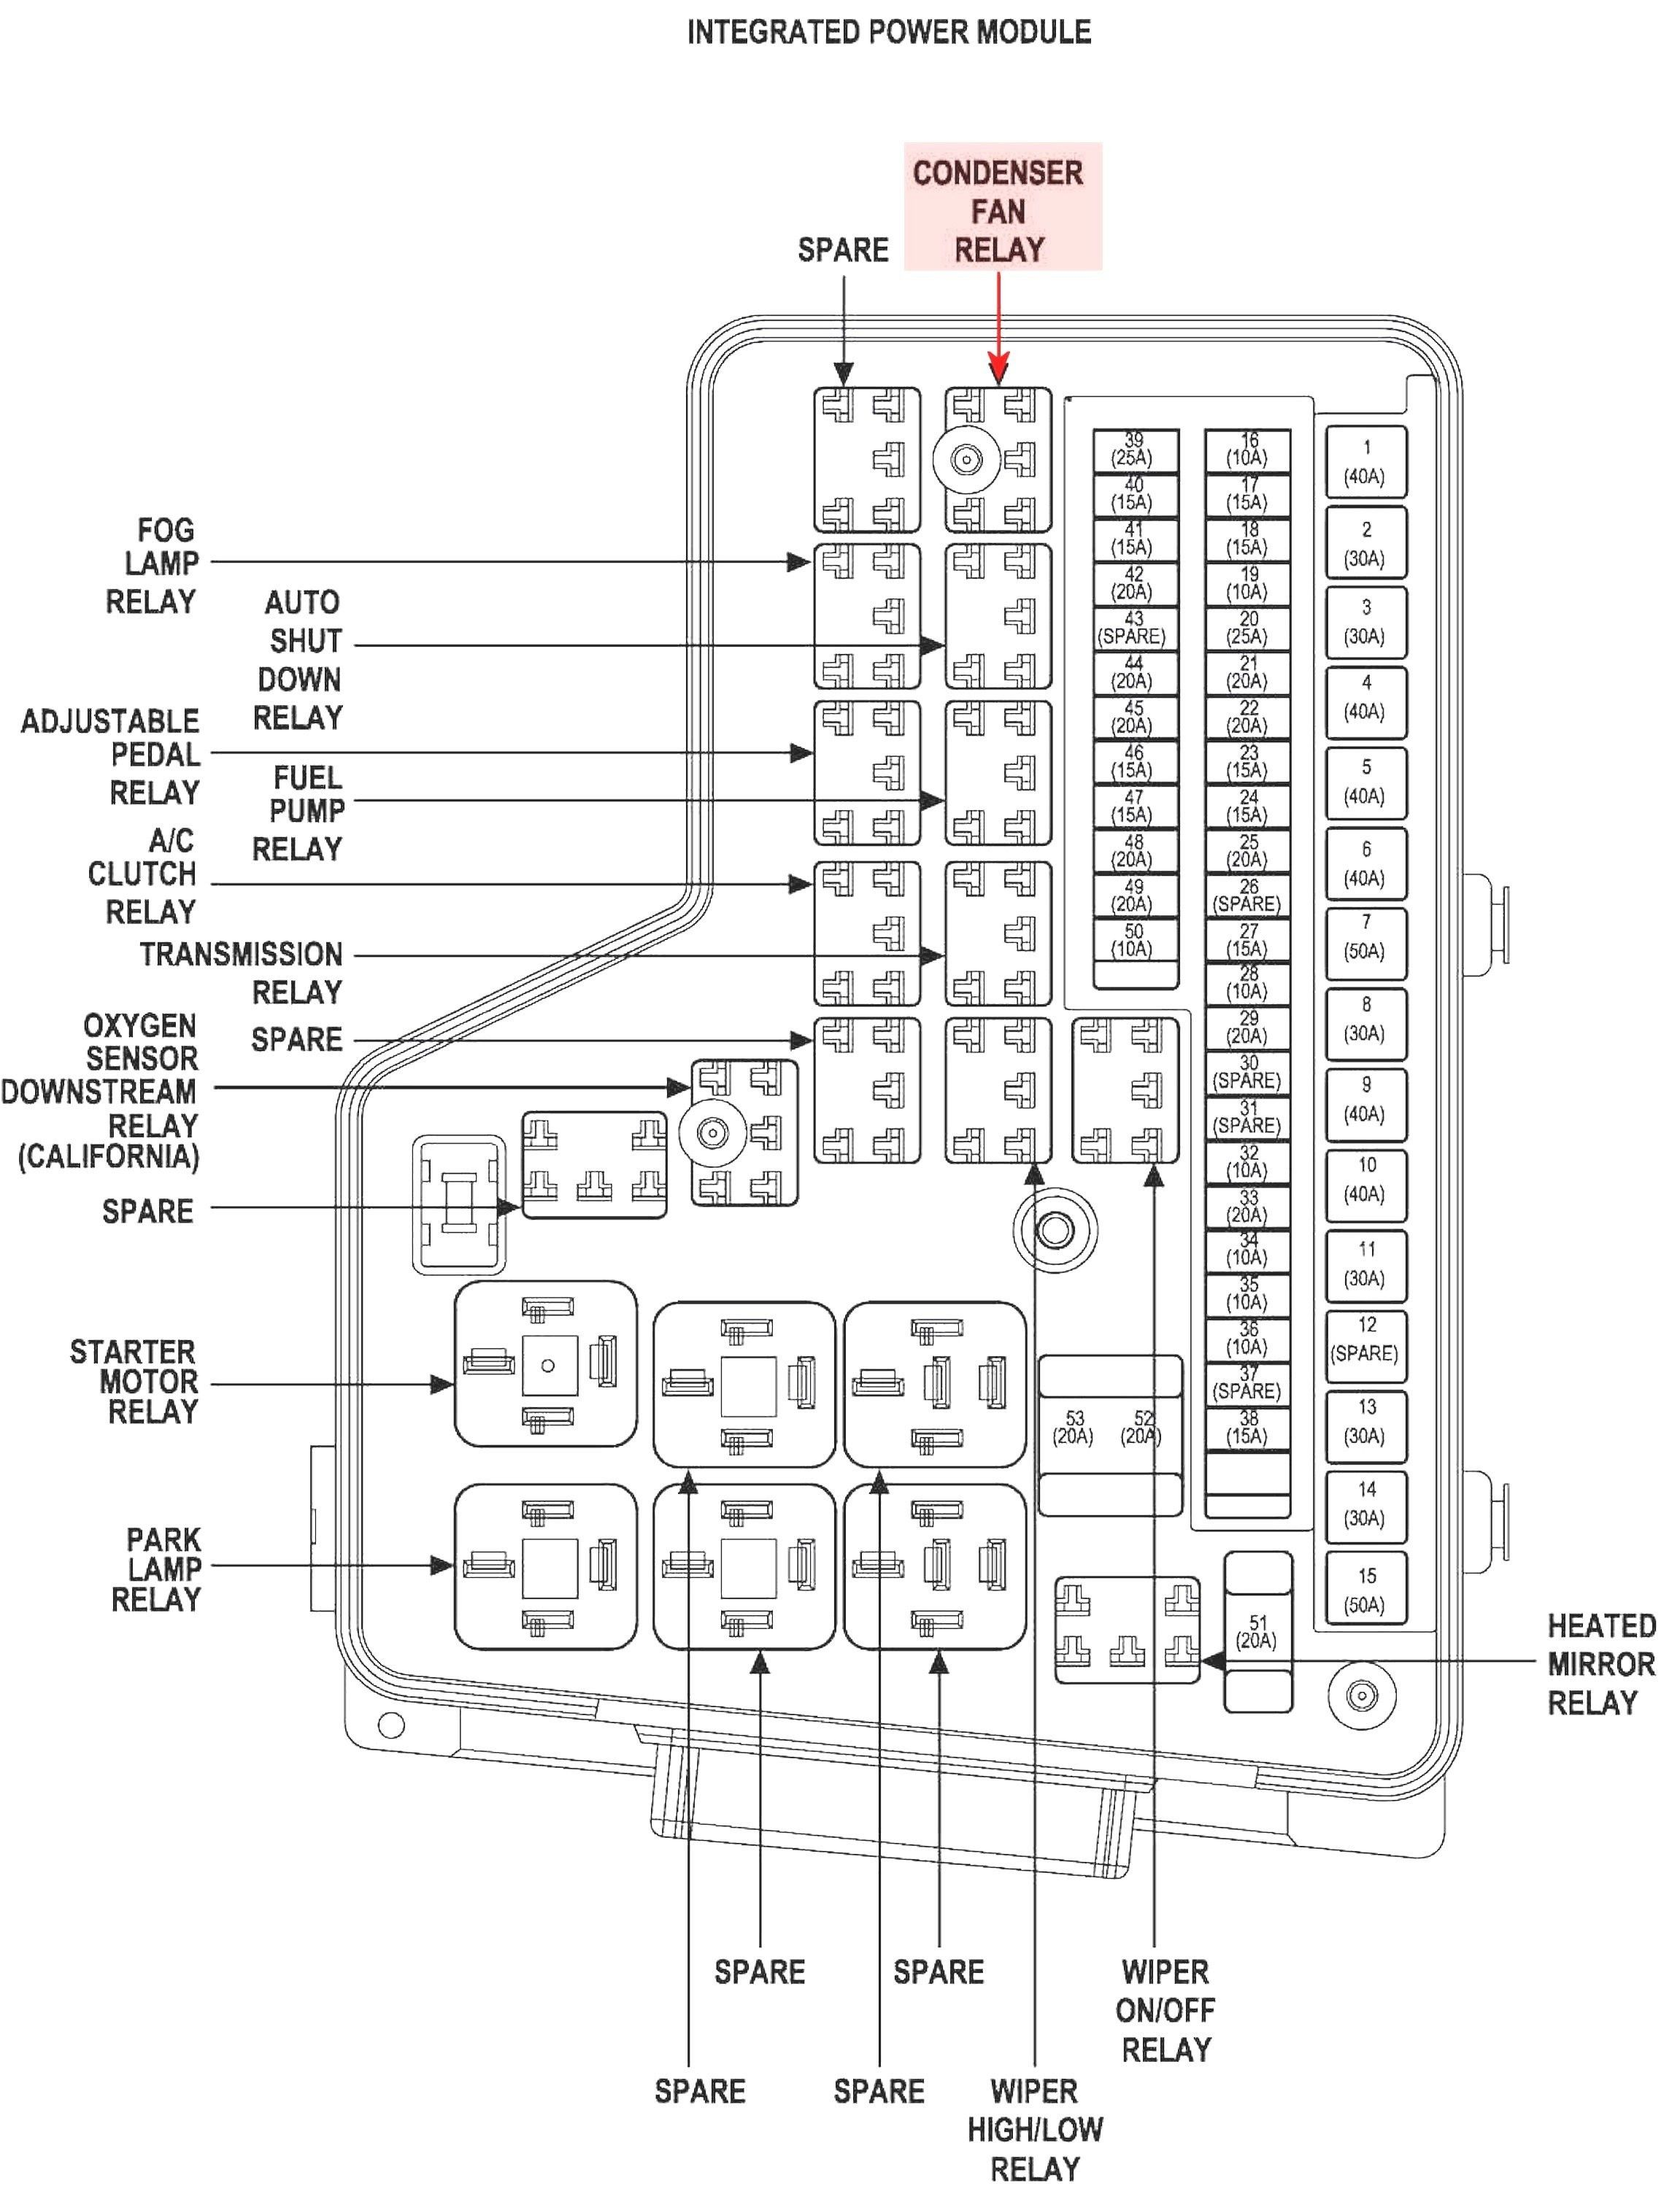 31 Dodge Ram 1500 Radiator Diagram - Wiring Diagram Database